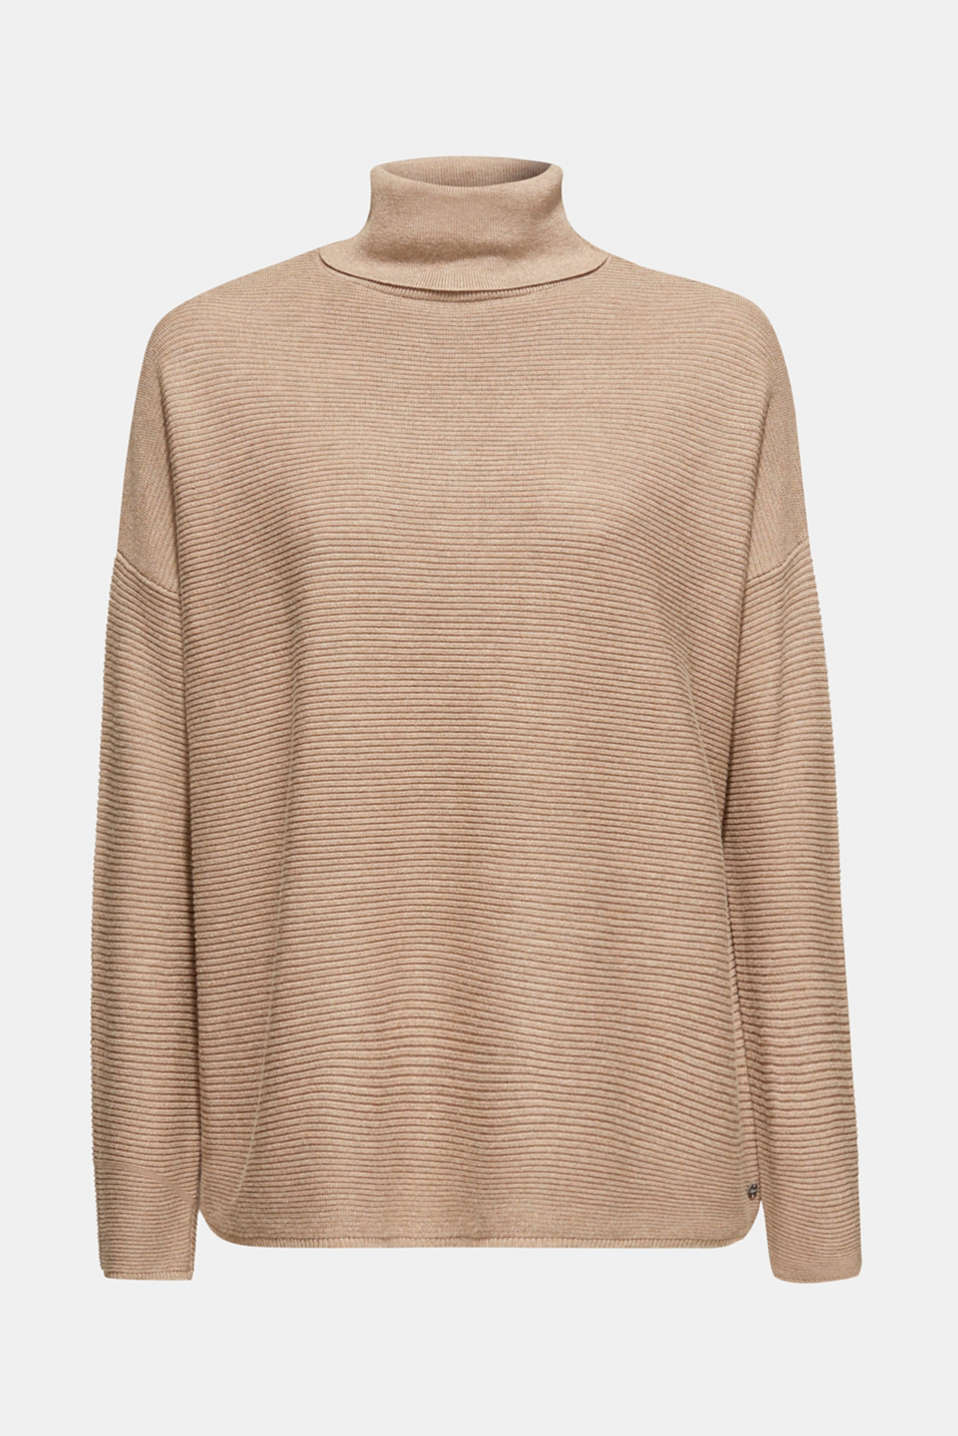 Oversized jumper with a ribbed texture, TAUPE 5, detail image number 6